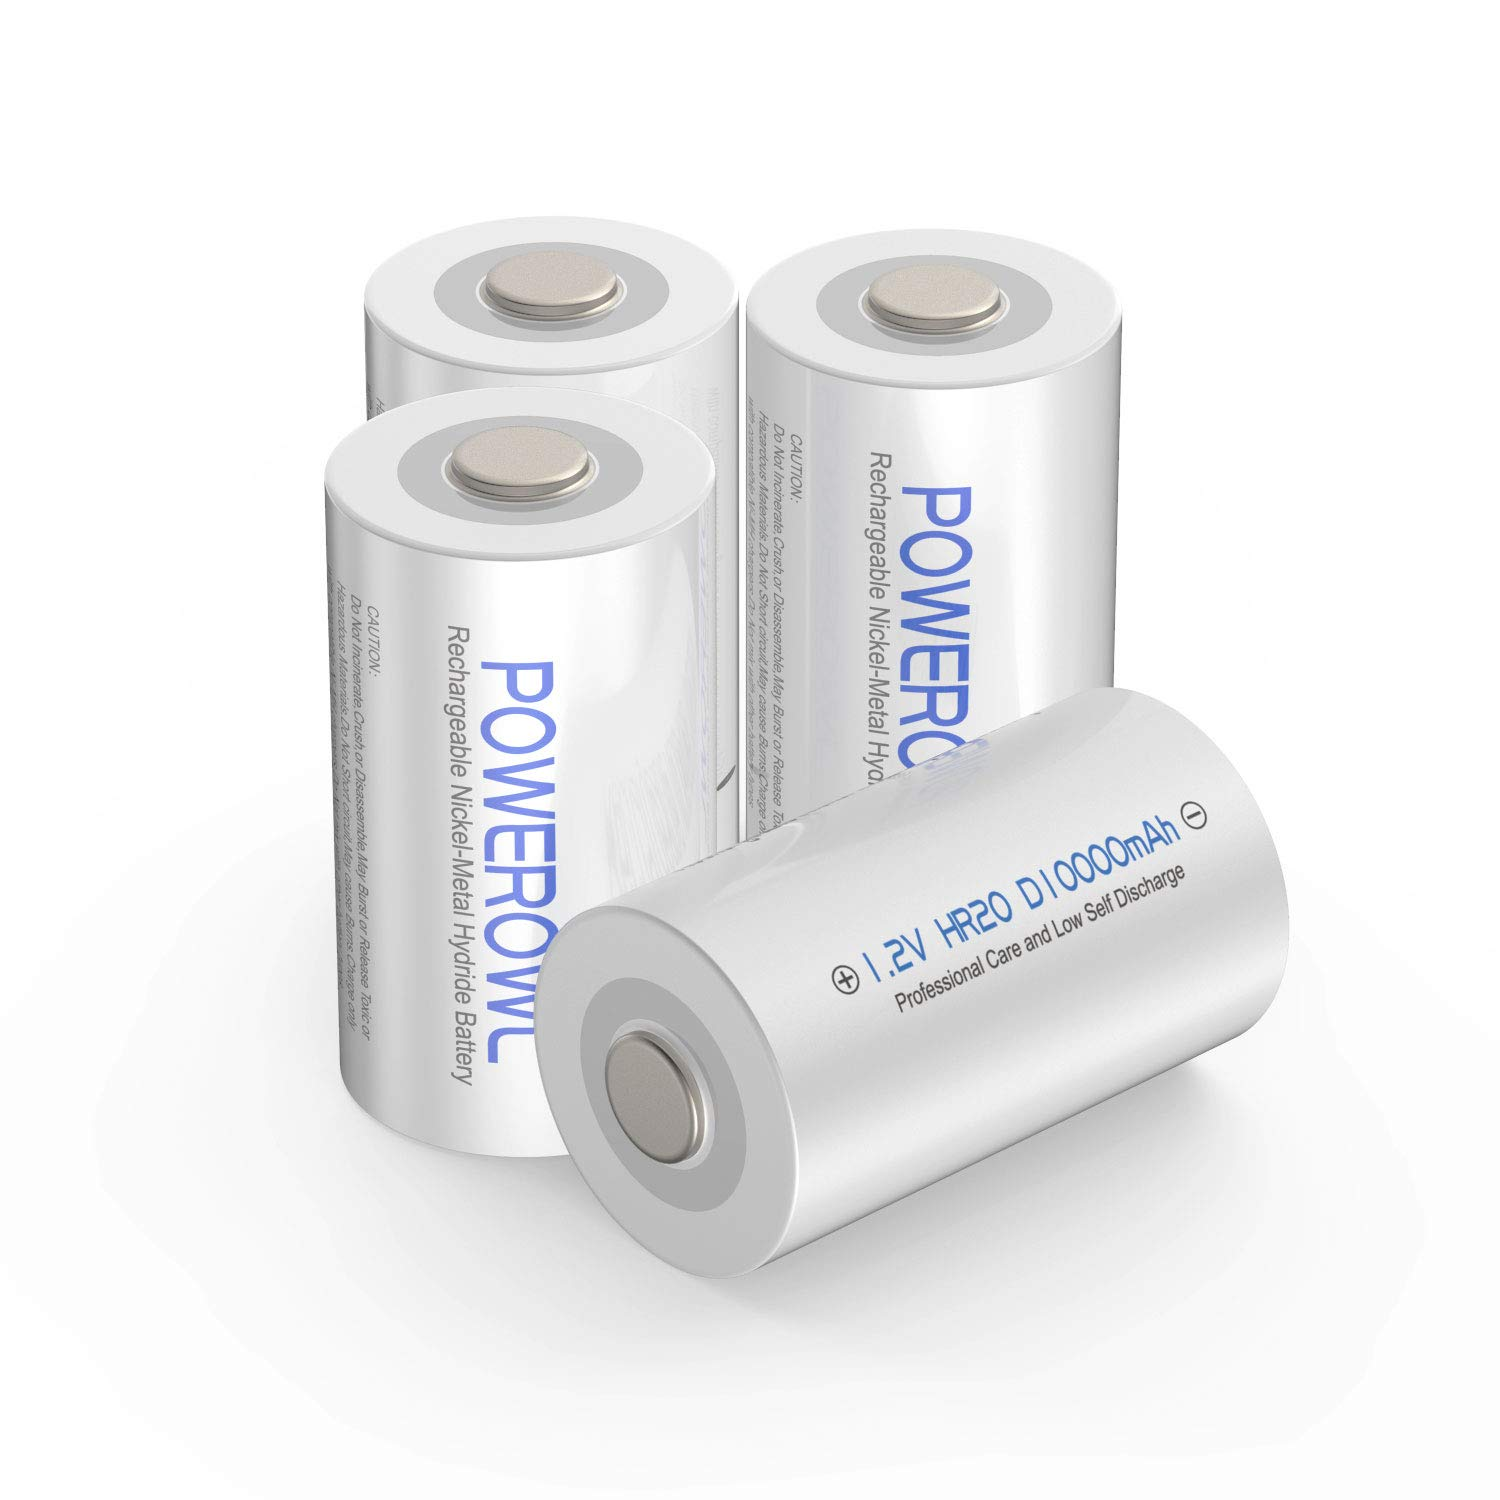 POWEROWL Rechargeable D Batteries 10000mah Low Self Discharge, NiMH, Pre-Charged, 4 Count (Recharge Universal) by POWEROWL